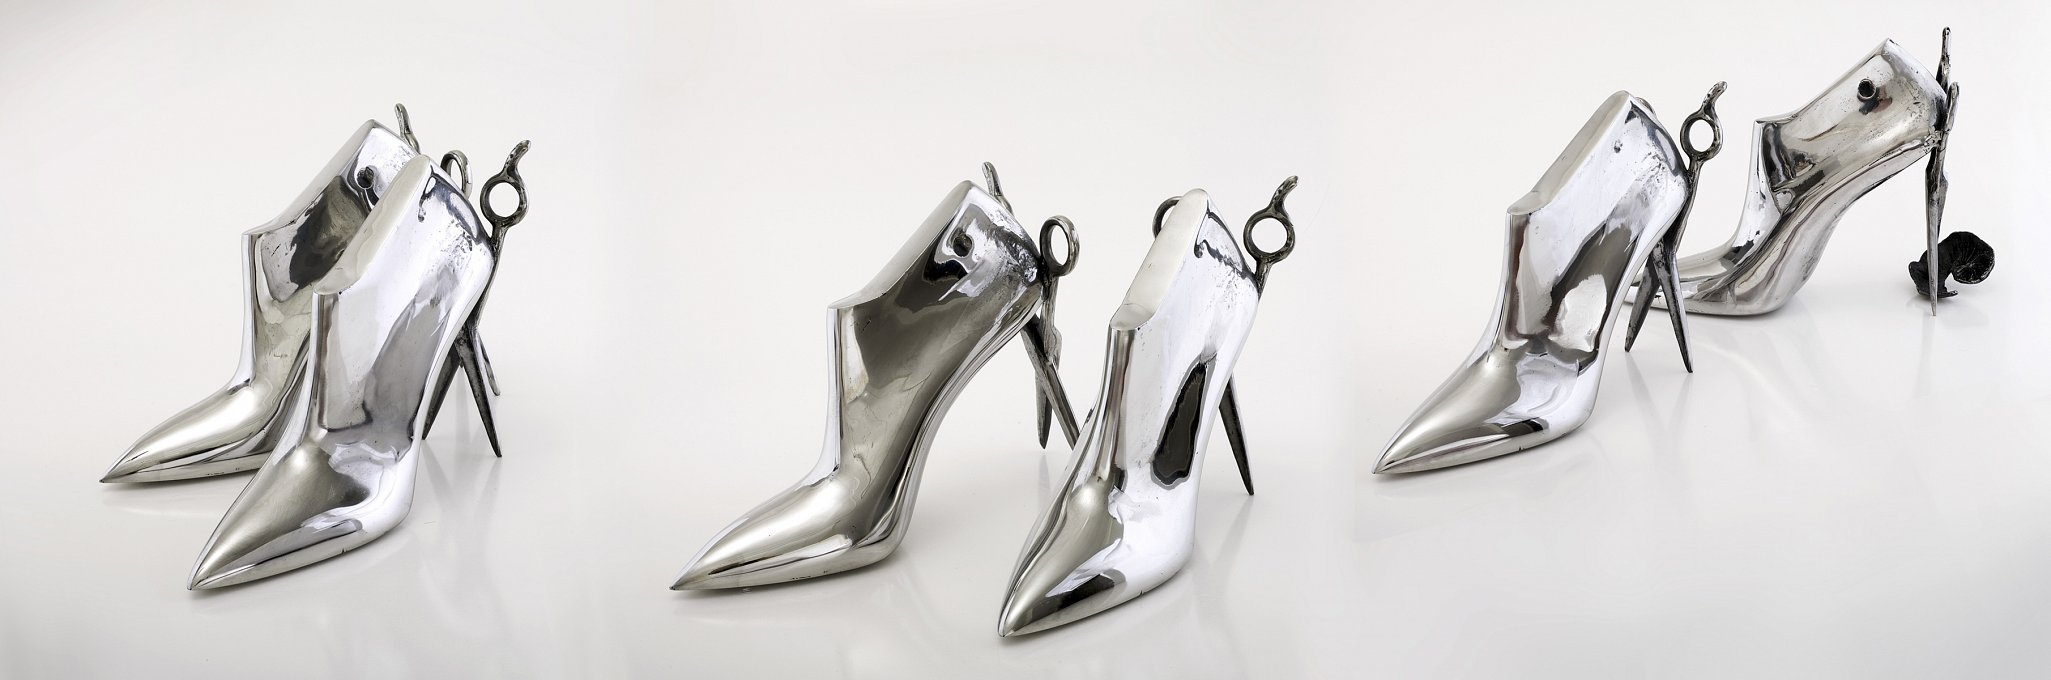 Catwalk Three pairs of cast stainless steel shoes with scissor heels